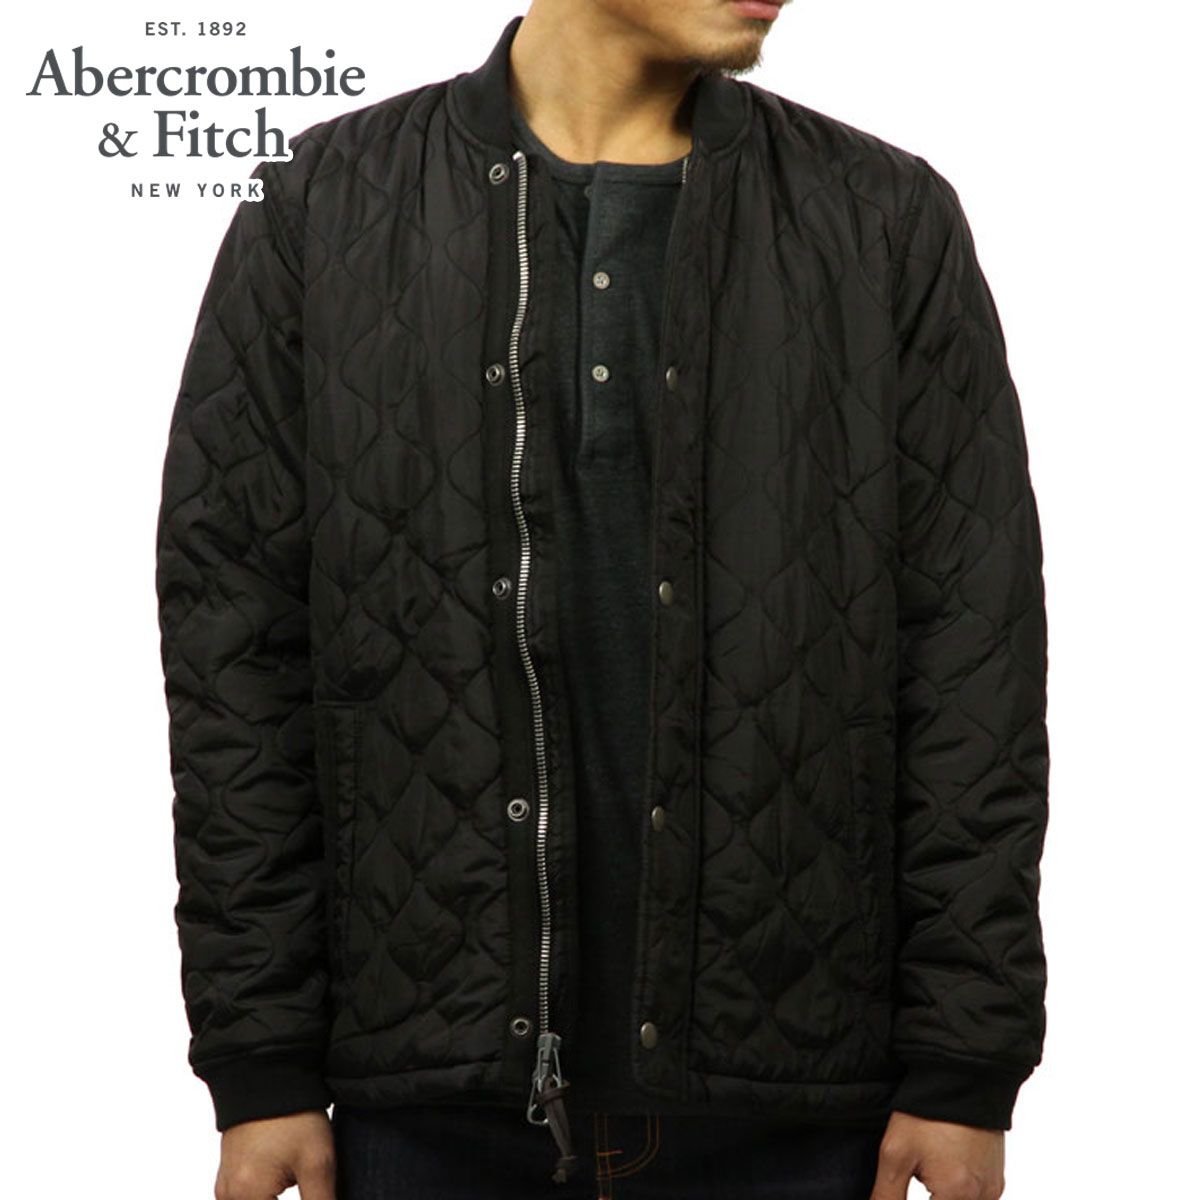 15%OFFセール 【販売期間 12/4 20:00~12/11 1:59】 アバクロ Abercrombie&Fitch 正規品 メンズ アウタージャケット SHERPA QUILTED BOMBER 132-328-1008-900 D00S20